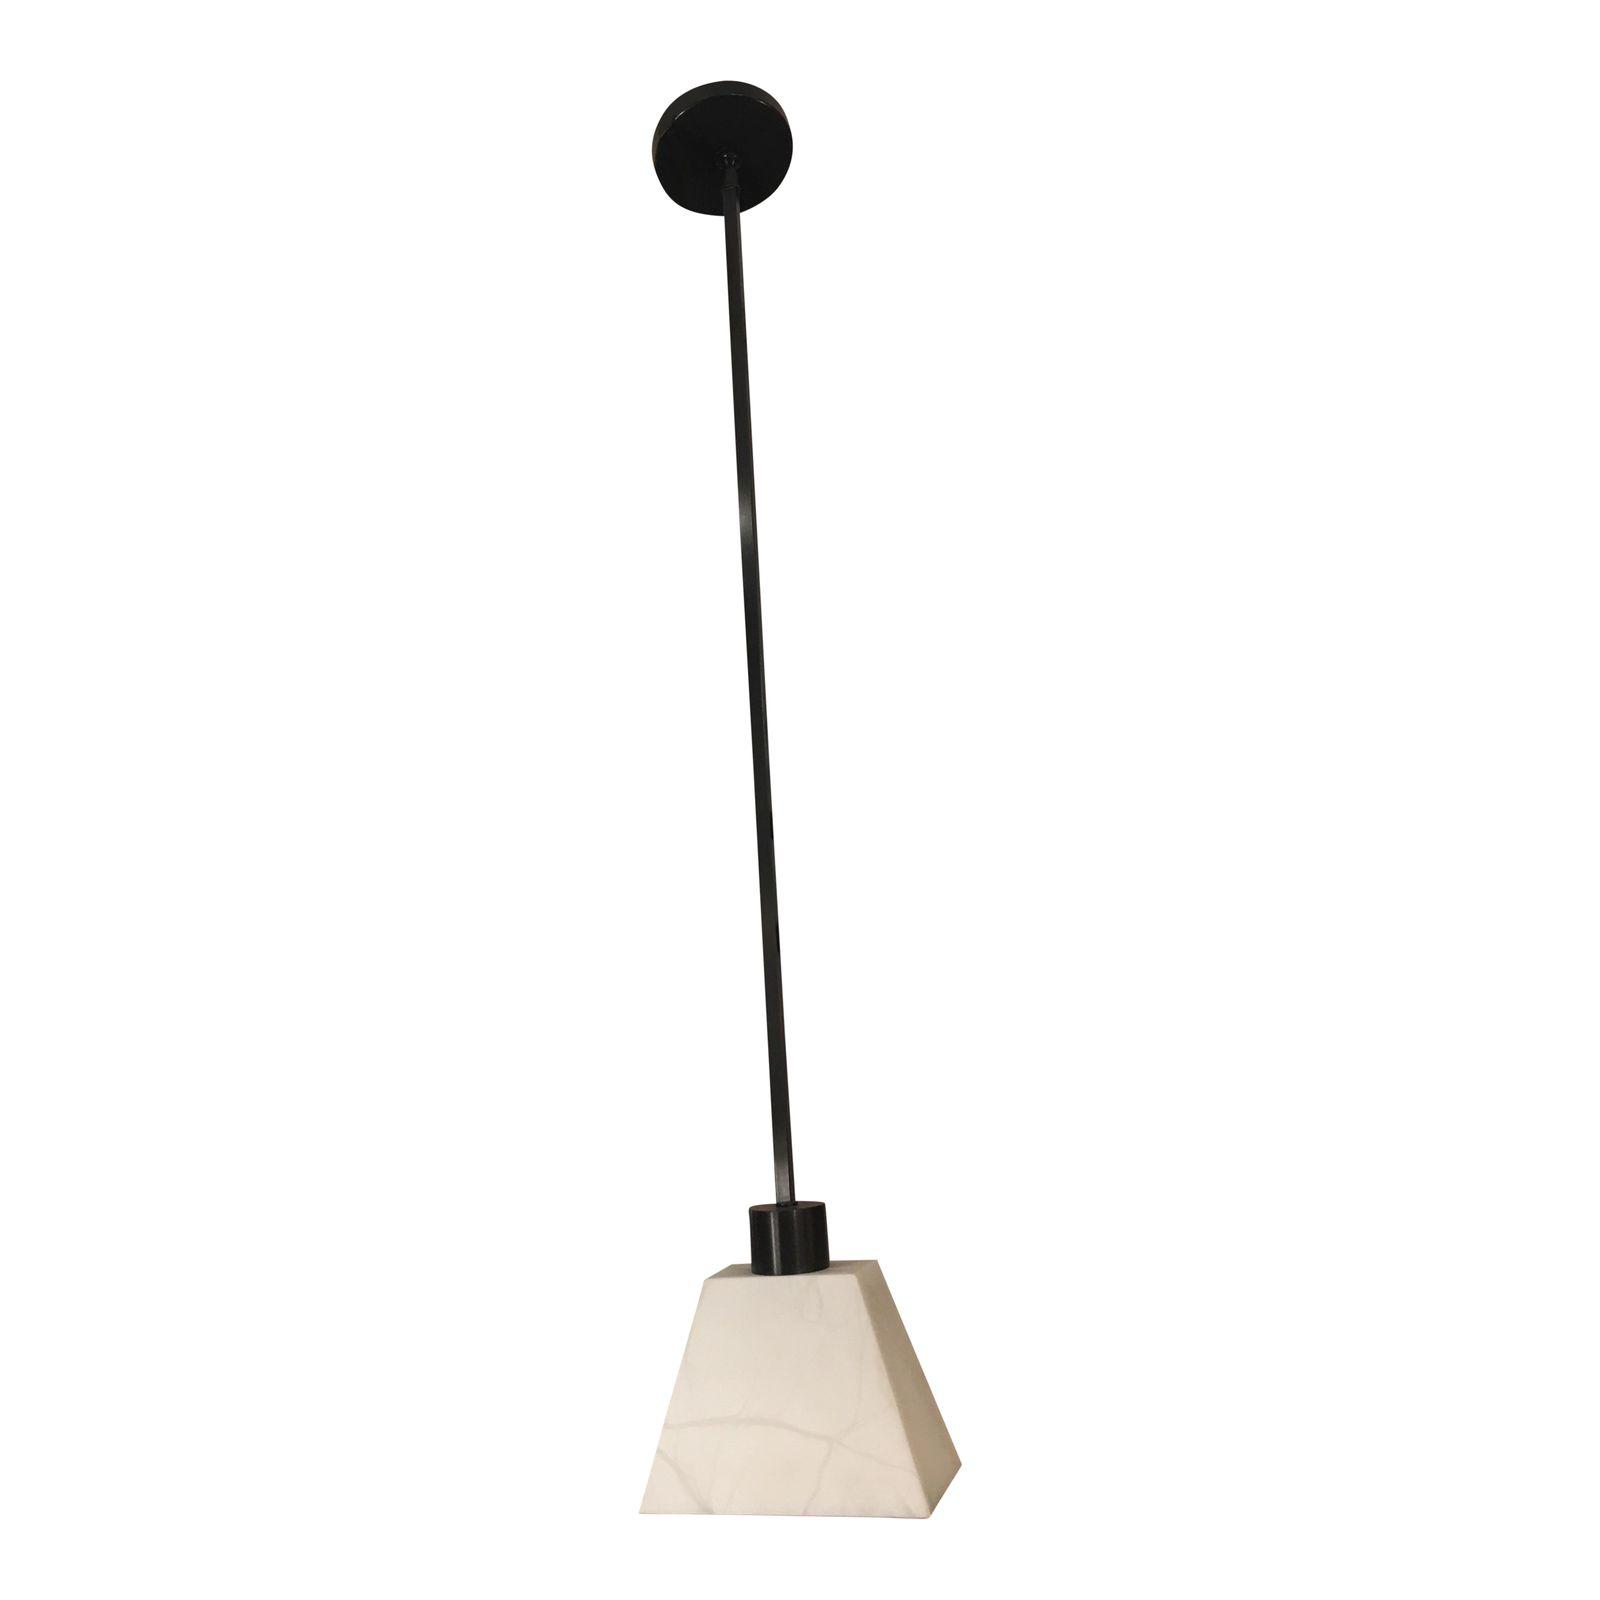 New jh lighting brass work inc oil rubbed alabaster pendant new jh lighting brass work inc oil rubbed alabaster pendant light original price 121500 design plus gallery aloadofball Images